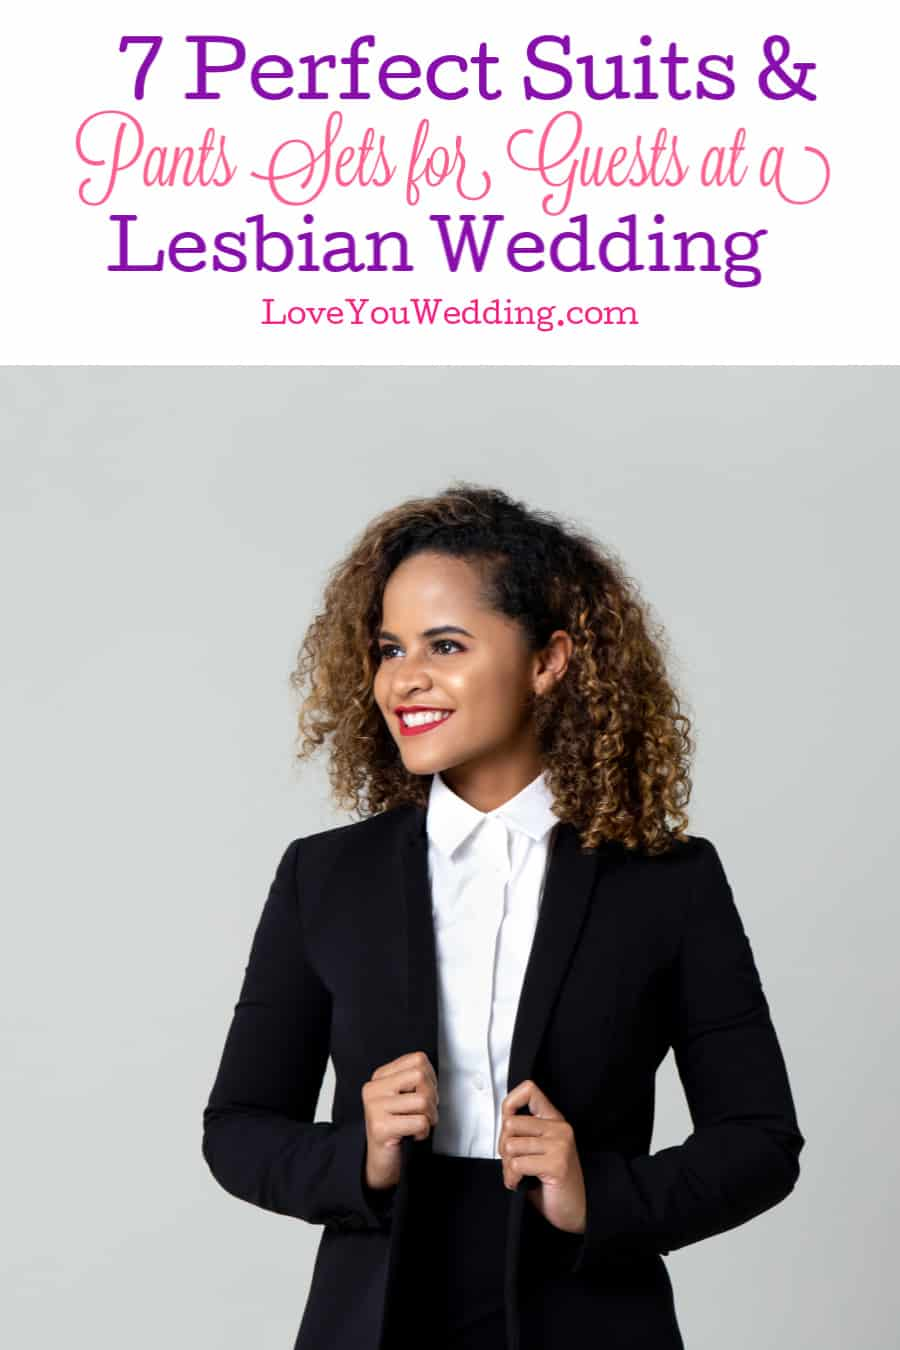 Lesbian wedding guest attire only has one rule- follow the dress code set by the couple. That said, we've got some great ideas you may love. Take a look!